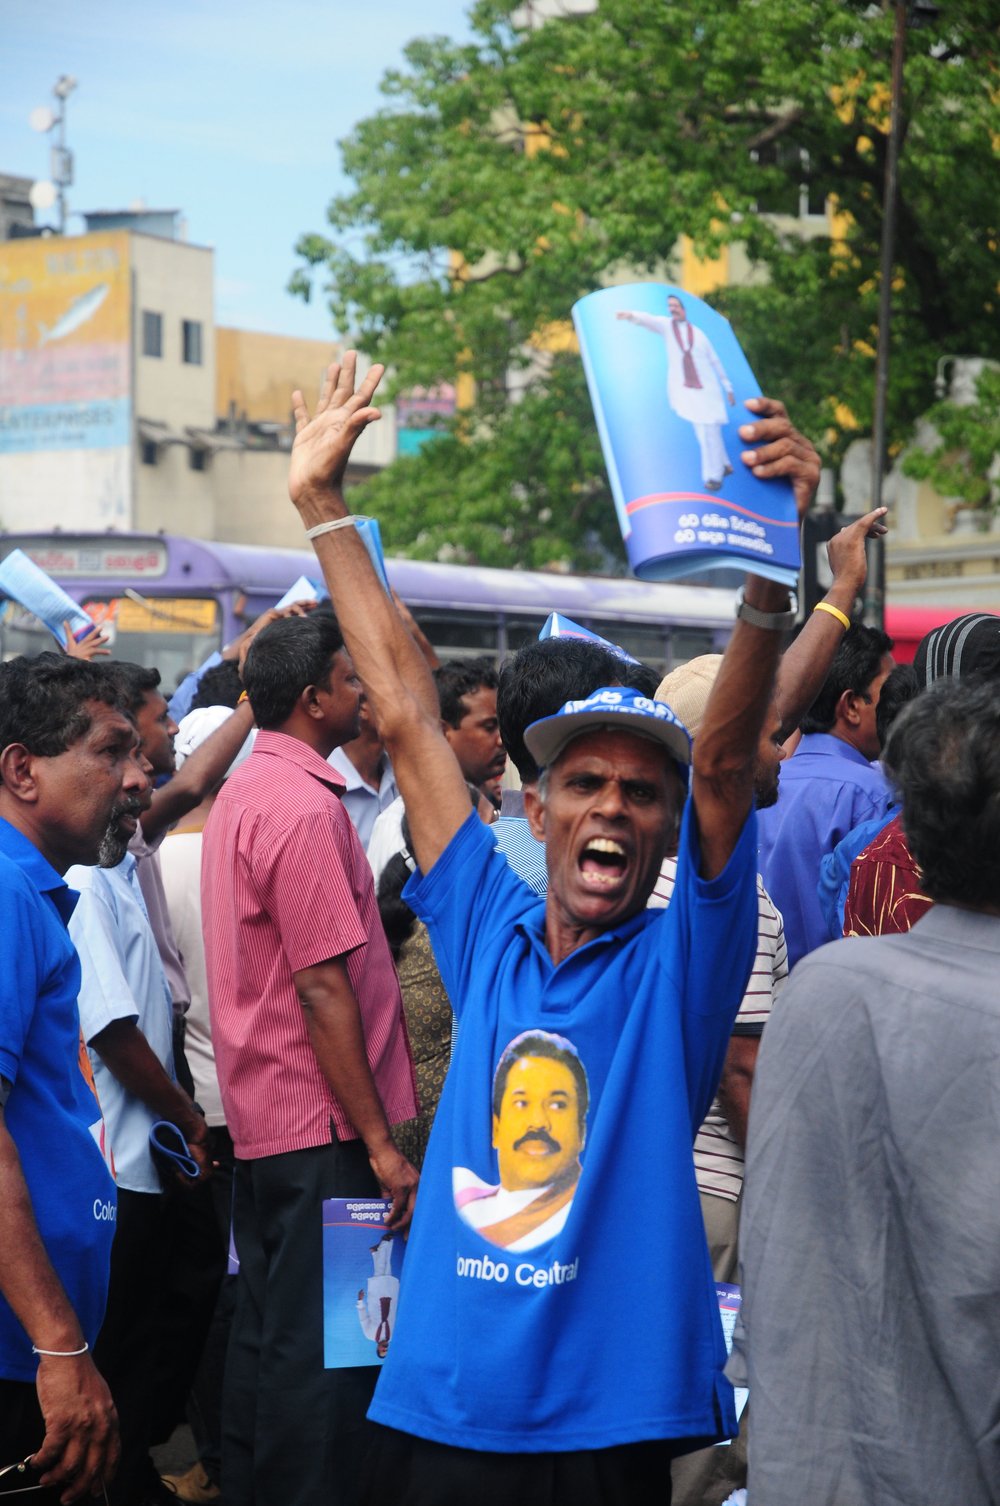 Supporters of President Mahinda Rajapaksa take to the streets wearing his party colours, chanting slogans and distributing propaganda material